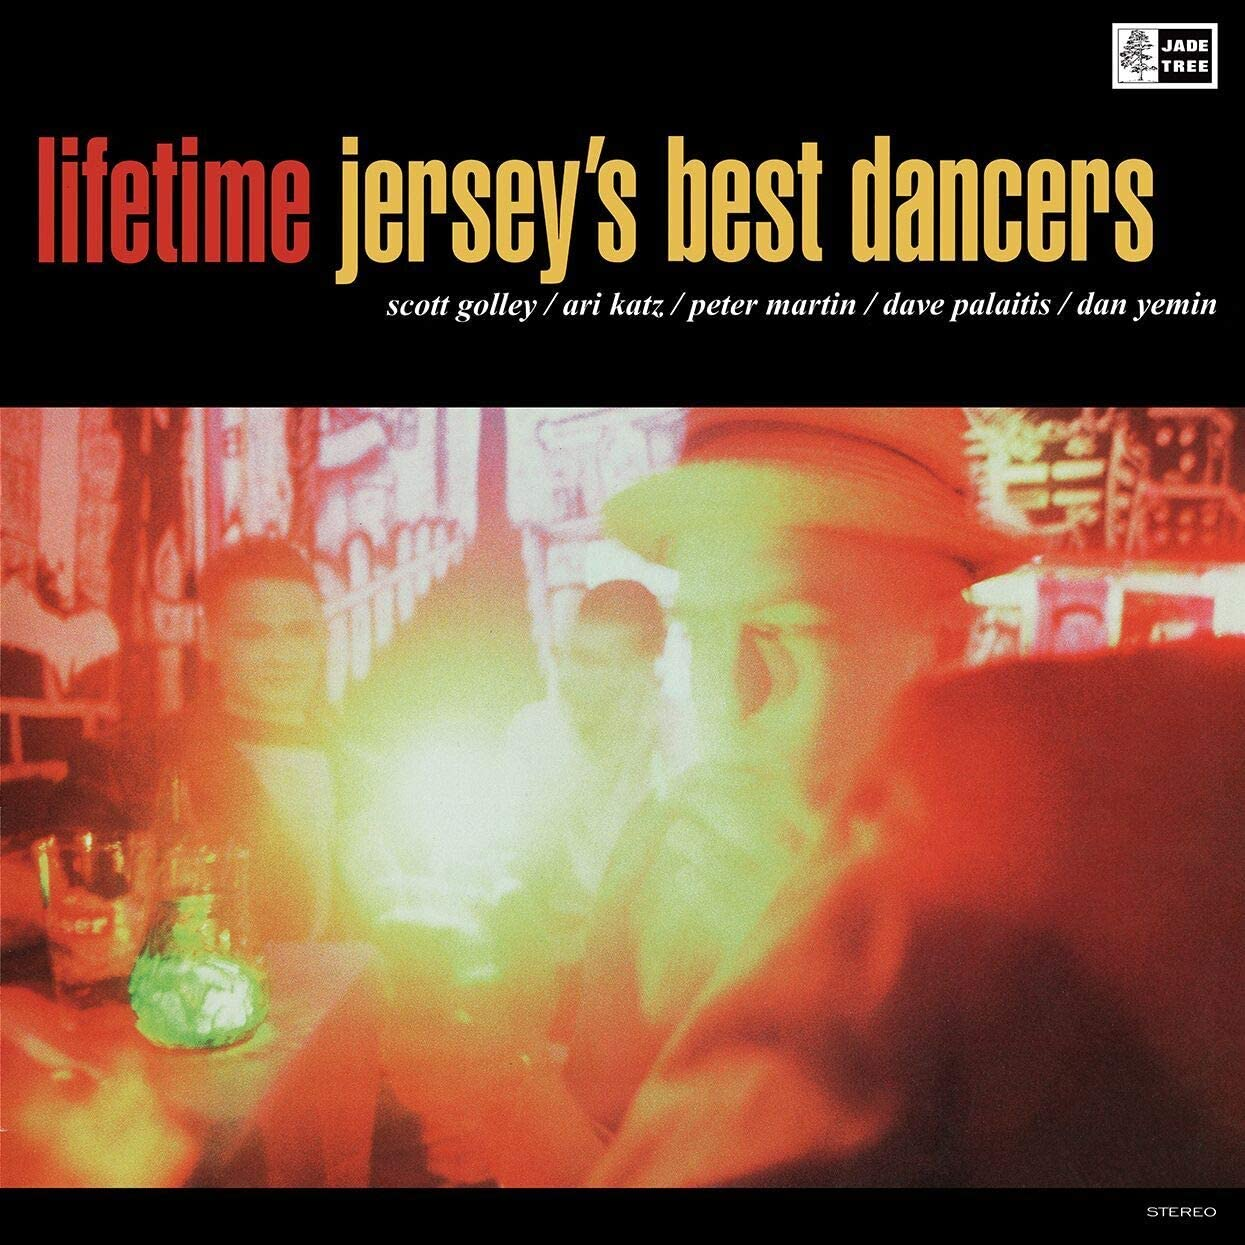 Lifetime/Jersey's Best Dancers (Colour Vinyl) [LP]